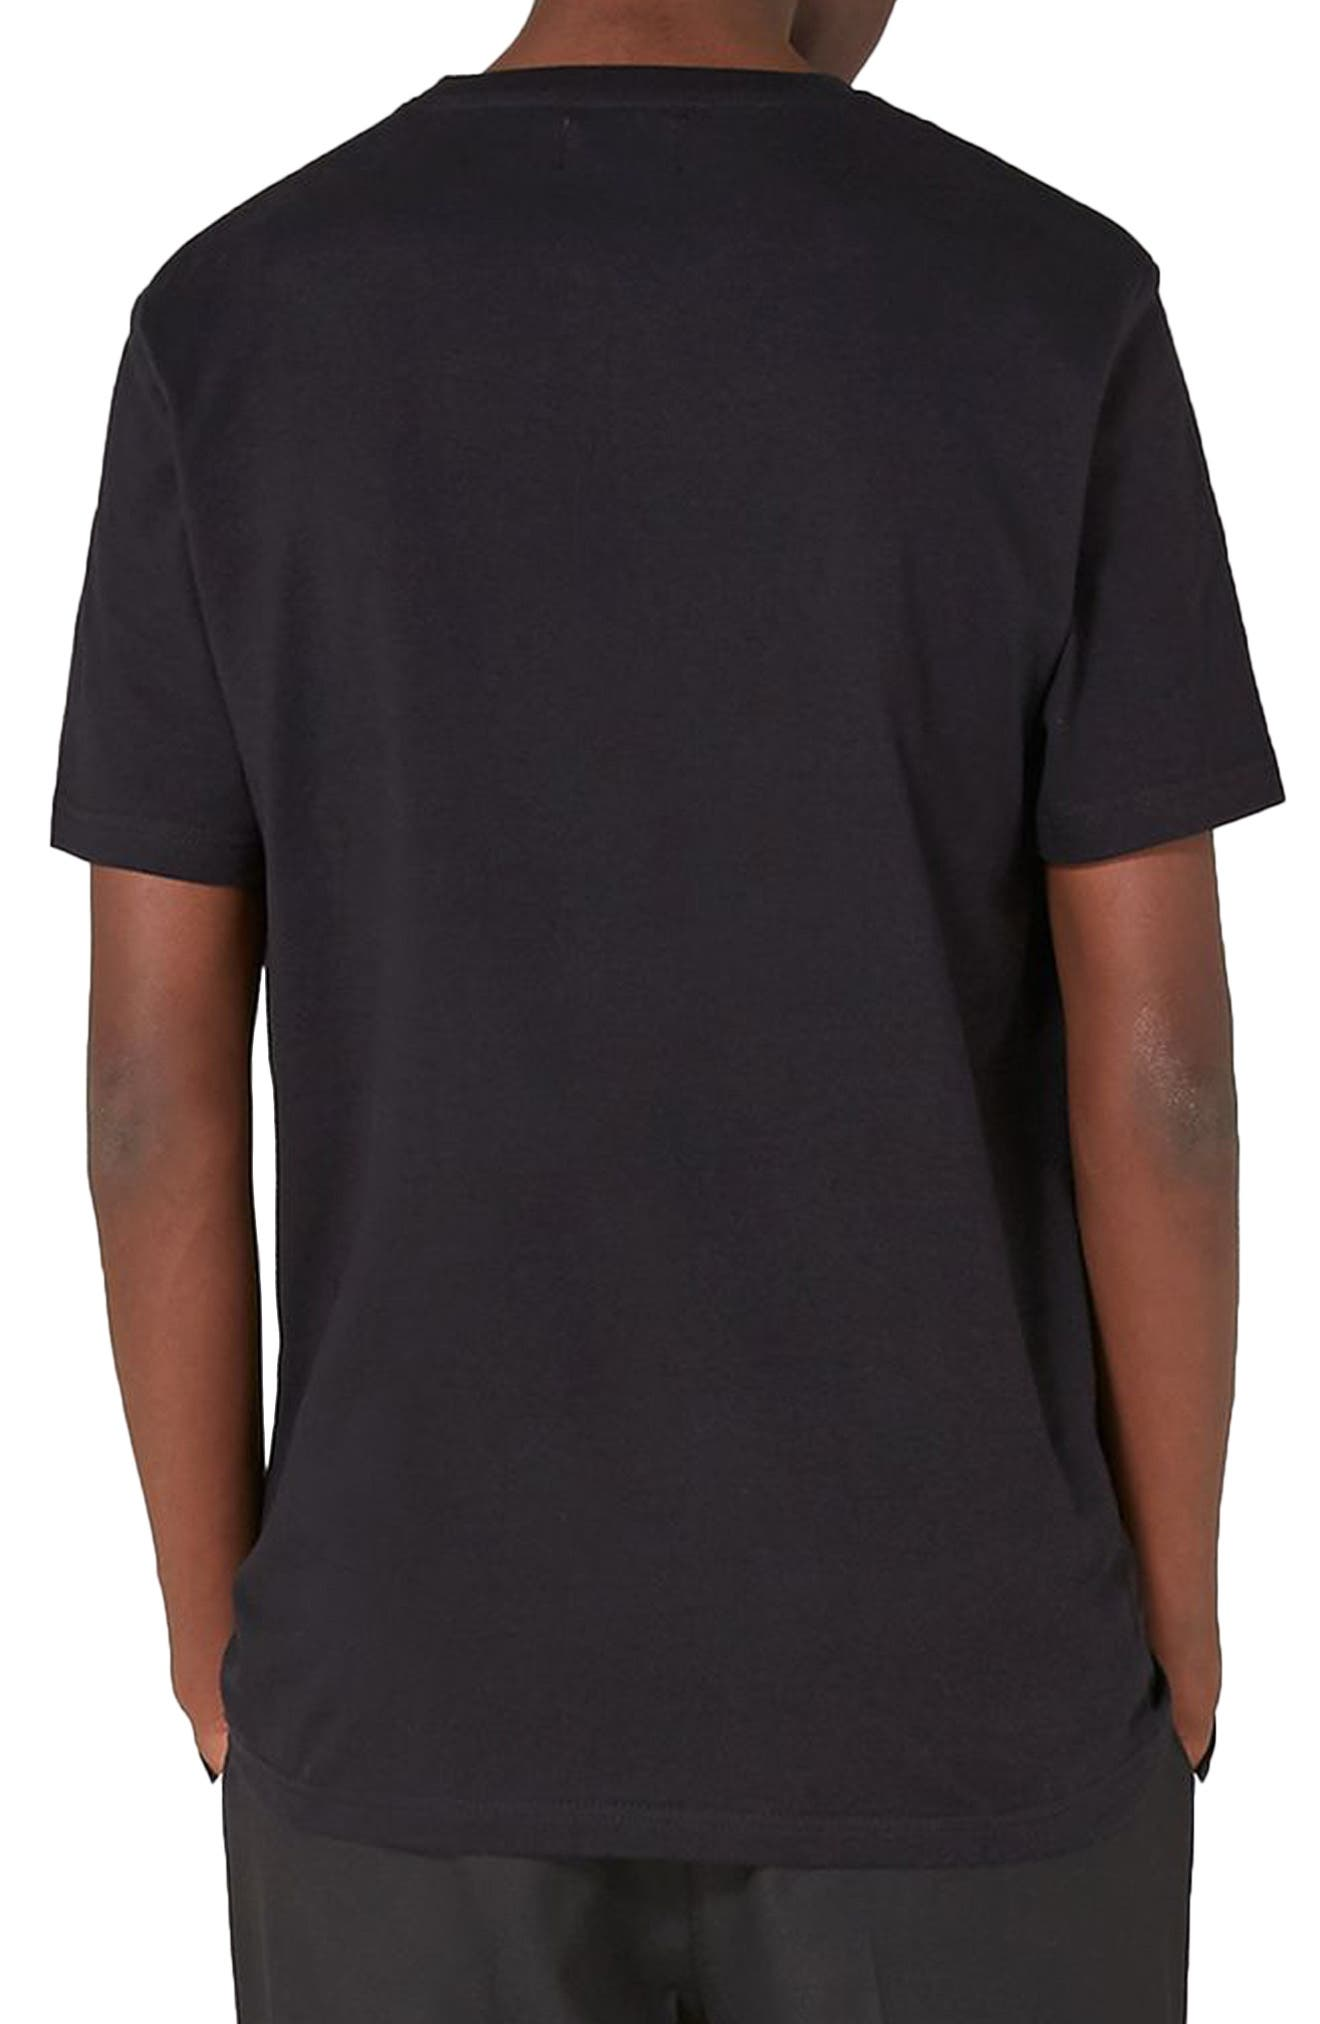 Palmiers Embroidered T-Shirt,                             Alternate thumbnail 2, color,